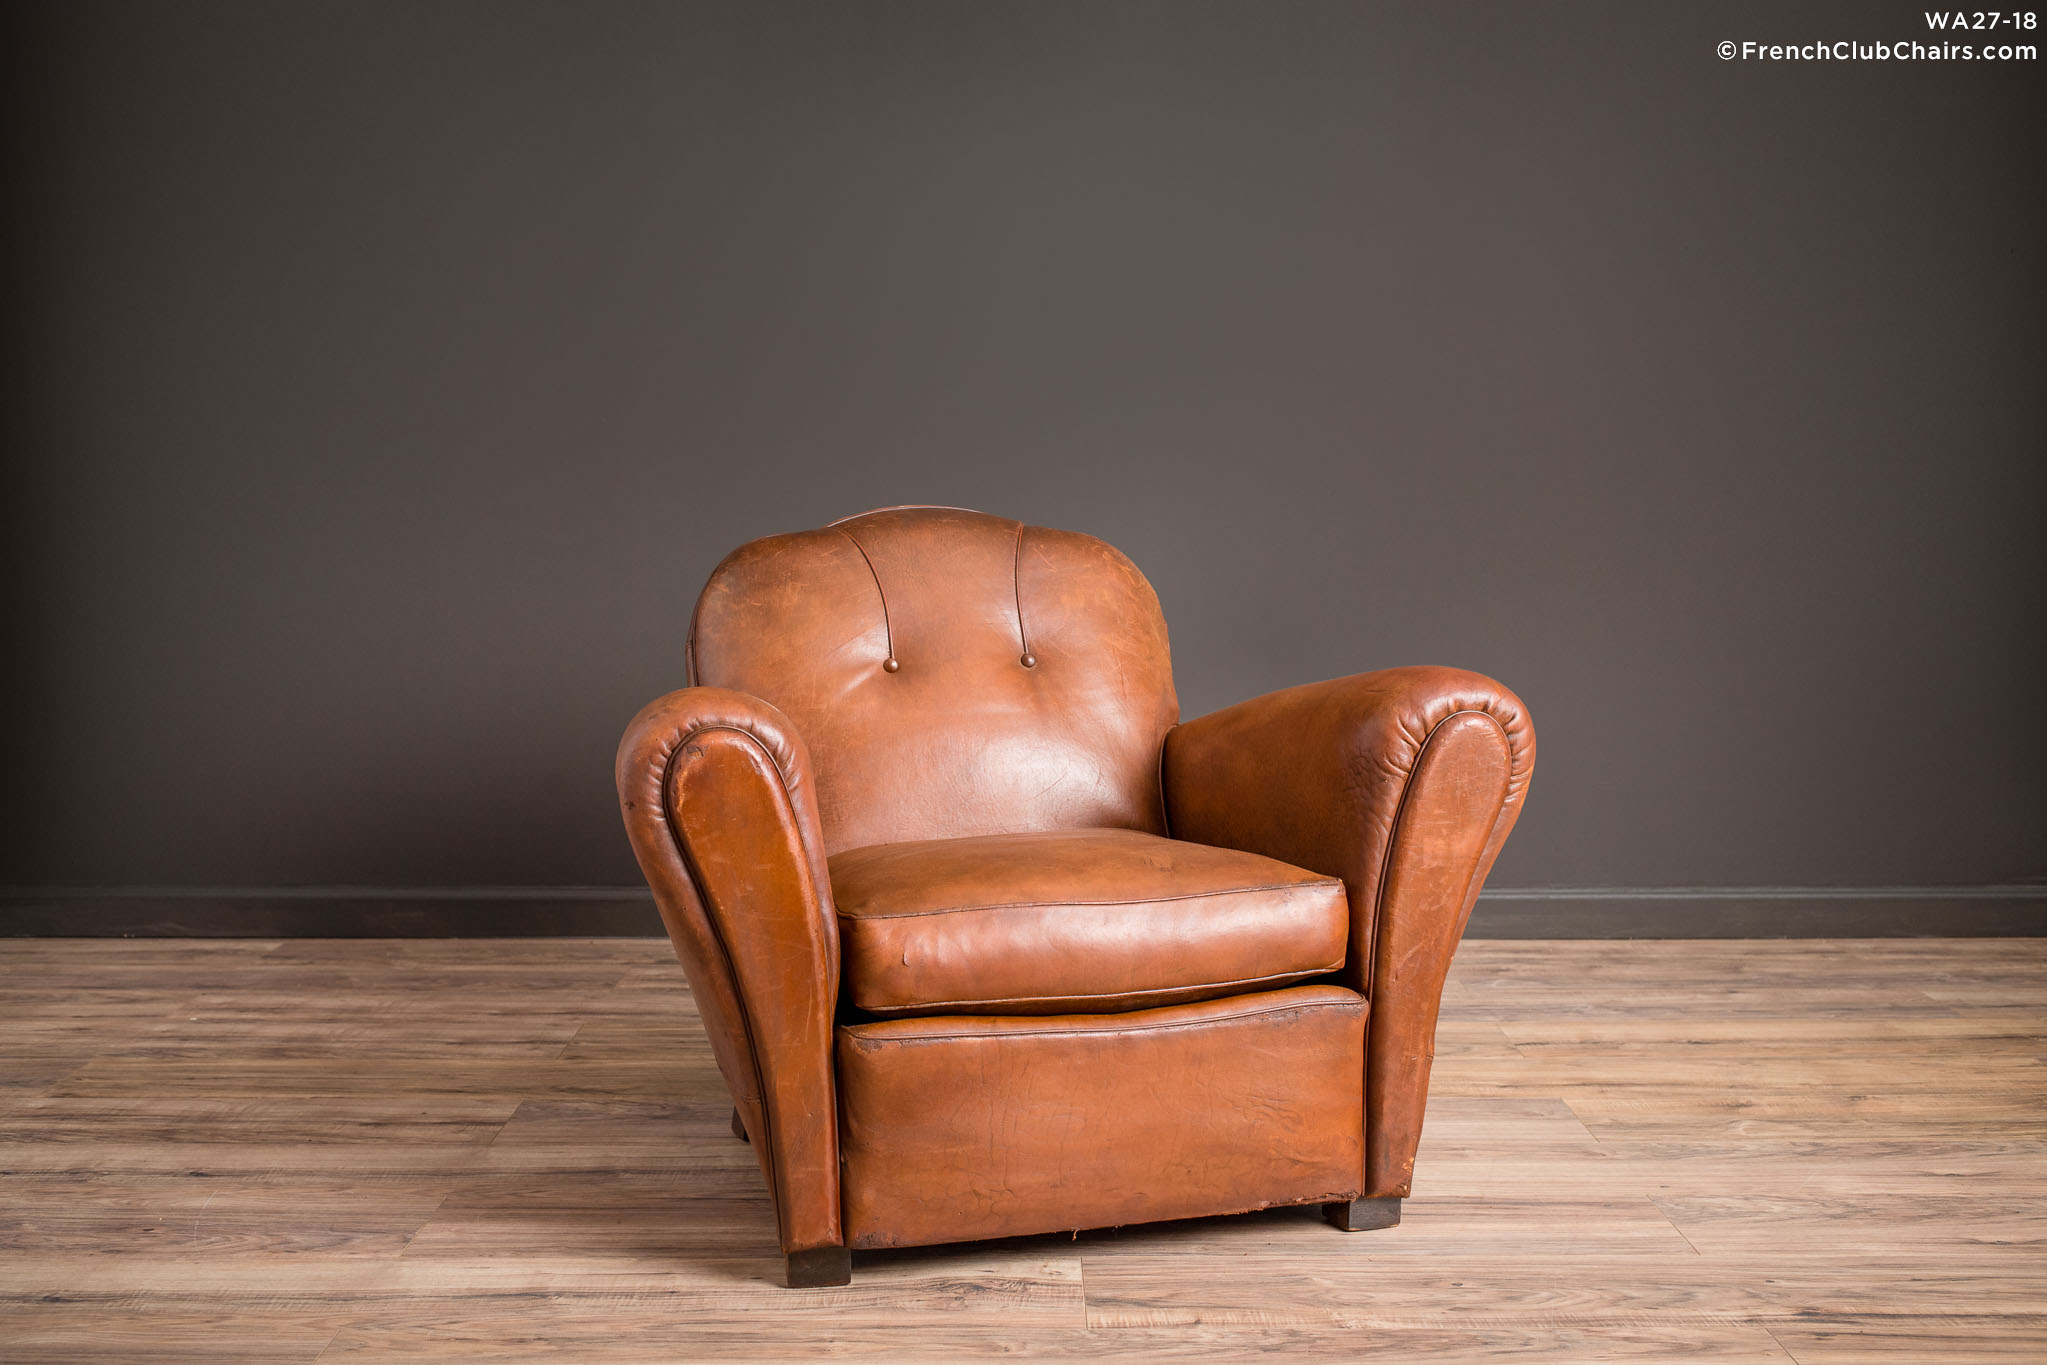 WA_27-18_St_Ouen_Trefle_Solo_R_1TQ-v01-williams-antiks-leather-french-club-chair-wa_fcccom